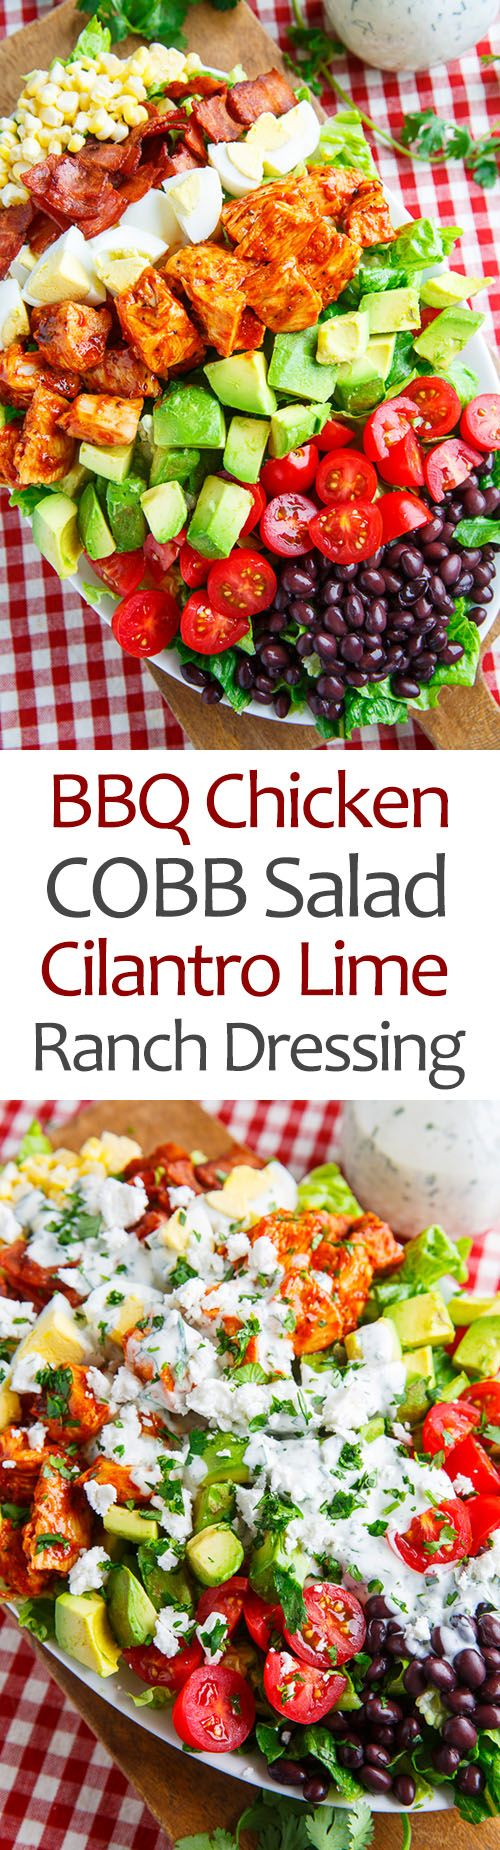 BBQ Chicken COBB Salad with Cilantro Lime Ranch Dressing from Kevin